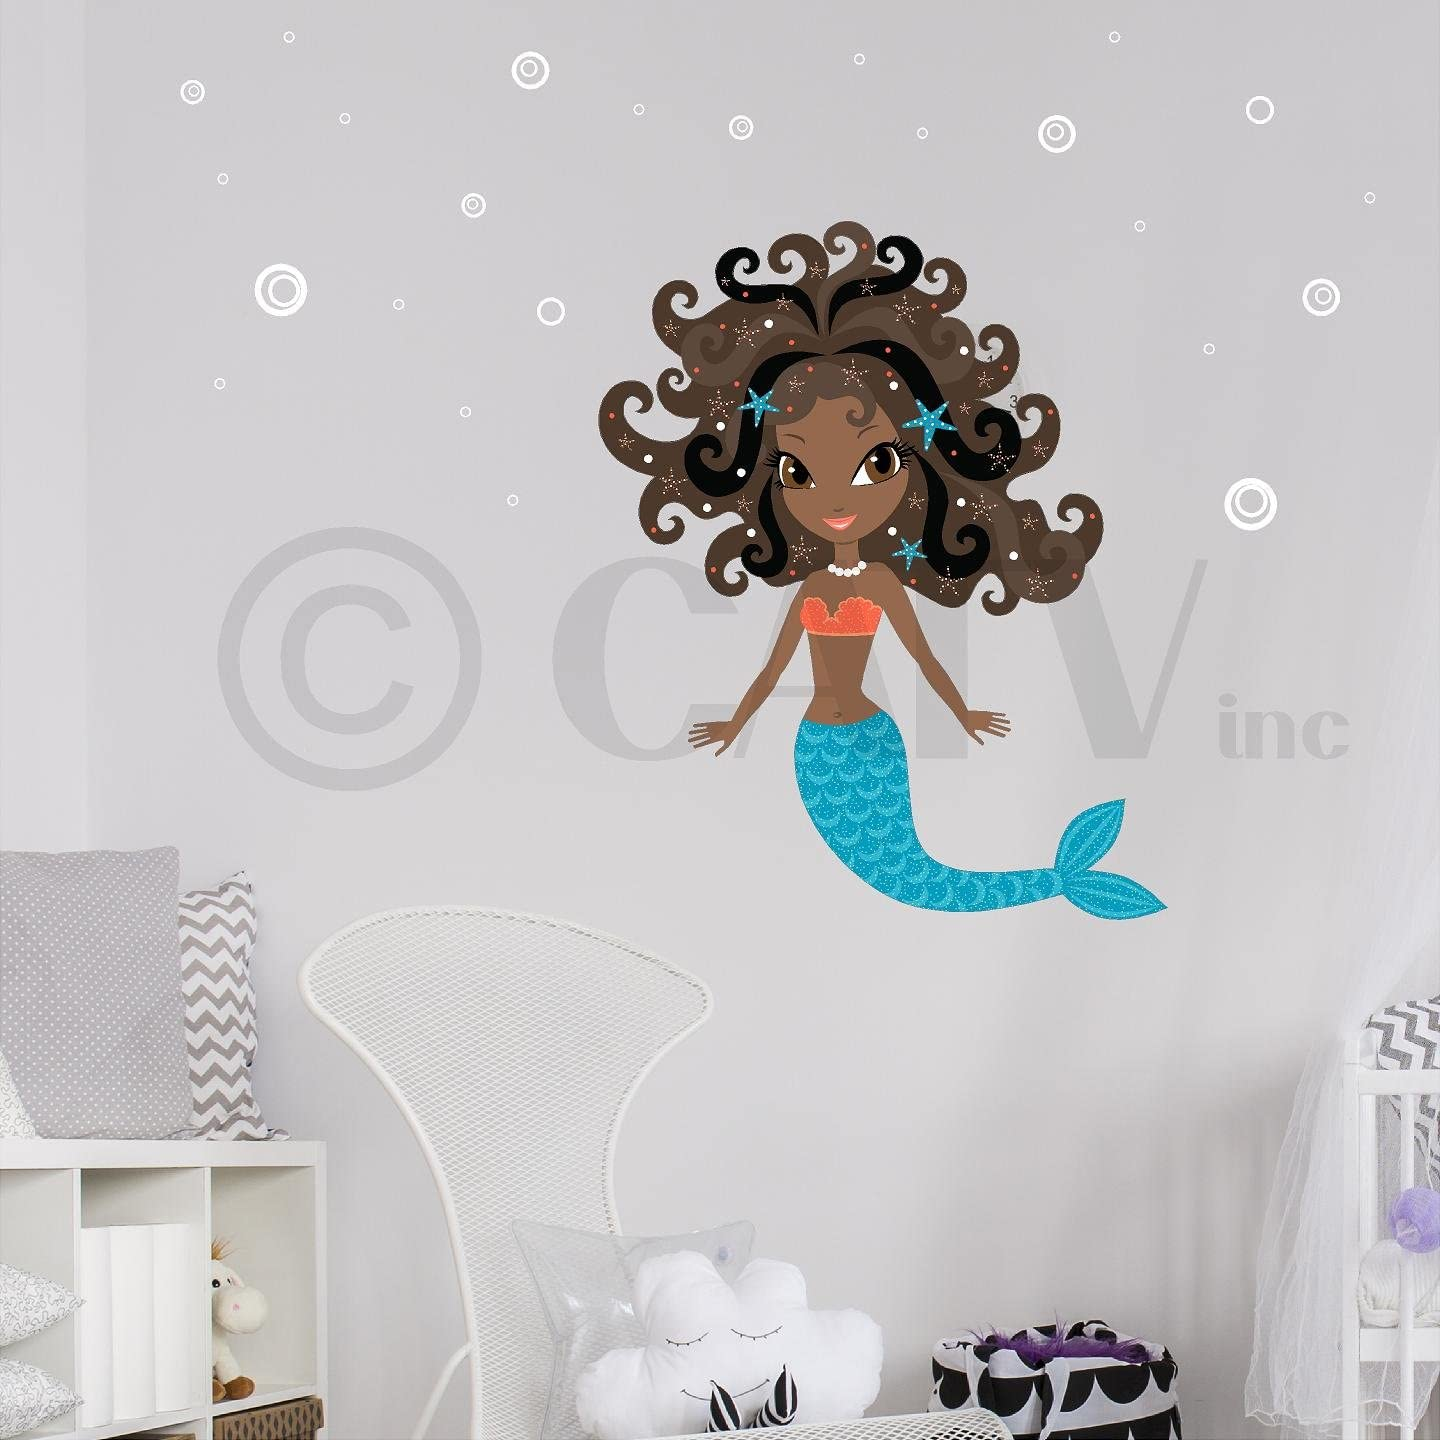 The Little Mermaid RoomMates Vinyl Wall Bedroom 43 Removable Decal Stickers